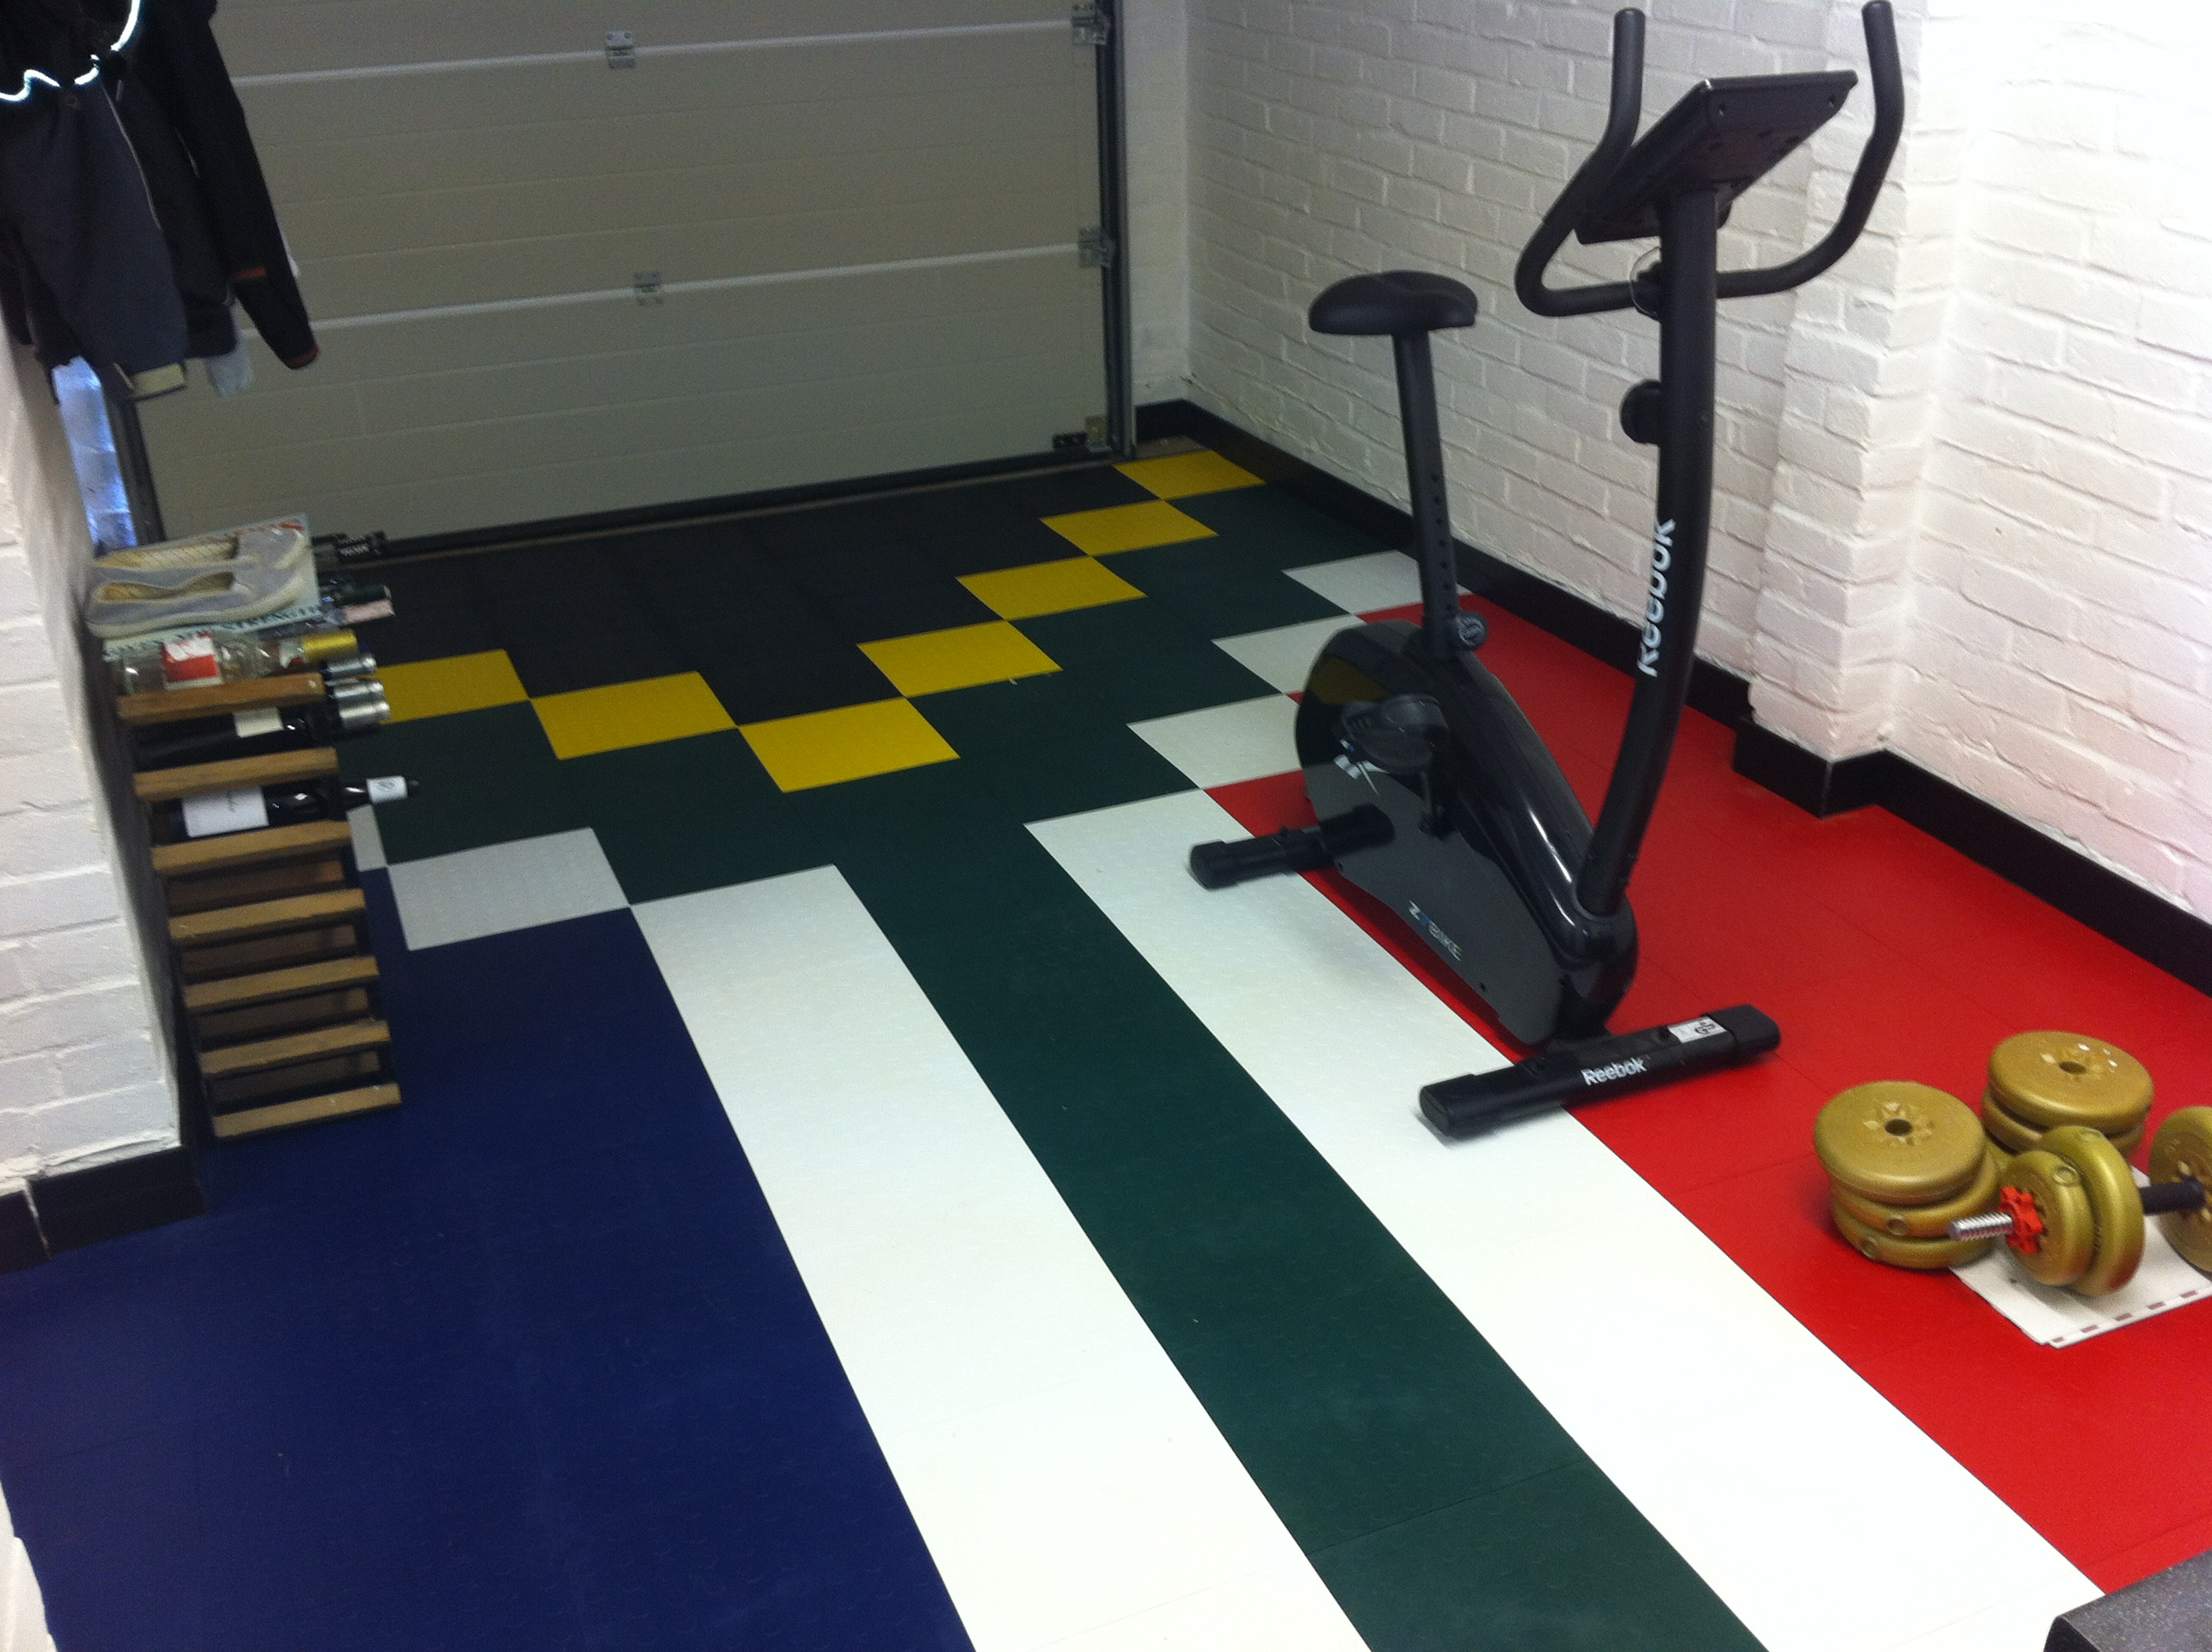 Combined gym flooring and garage project